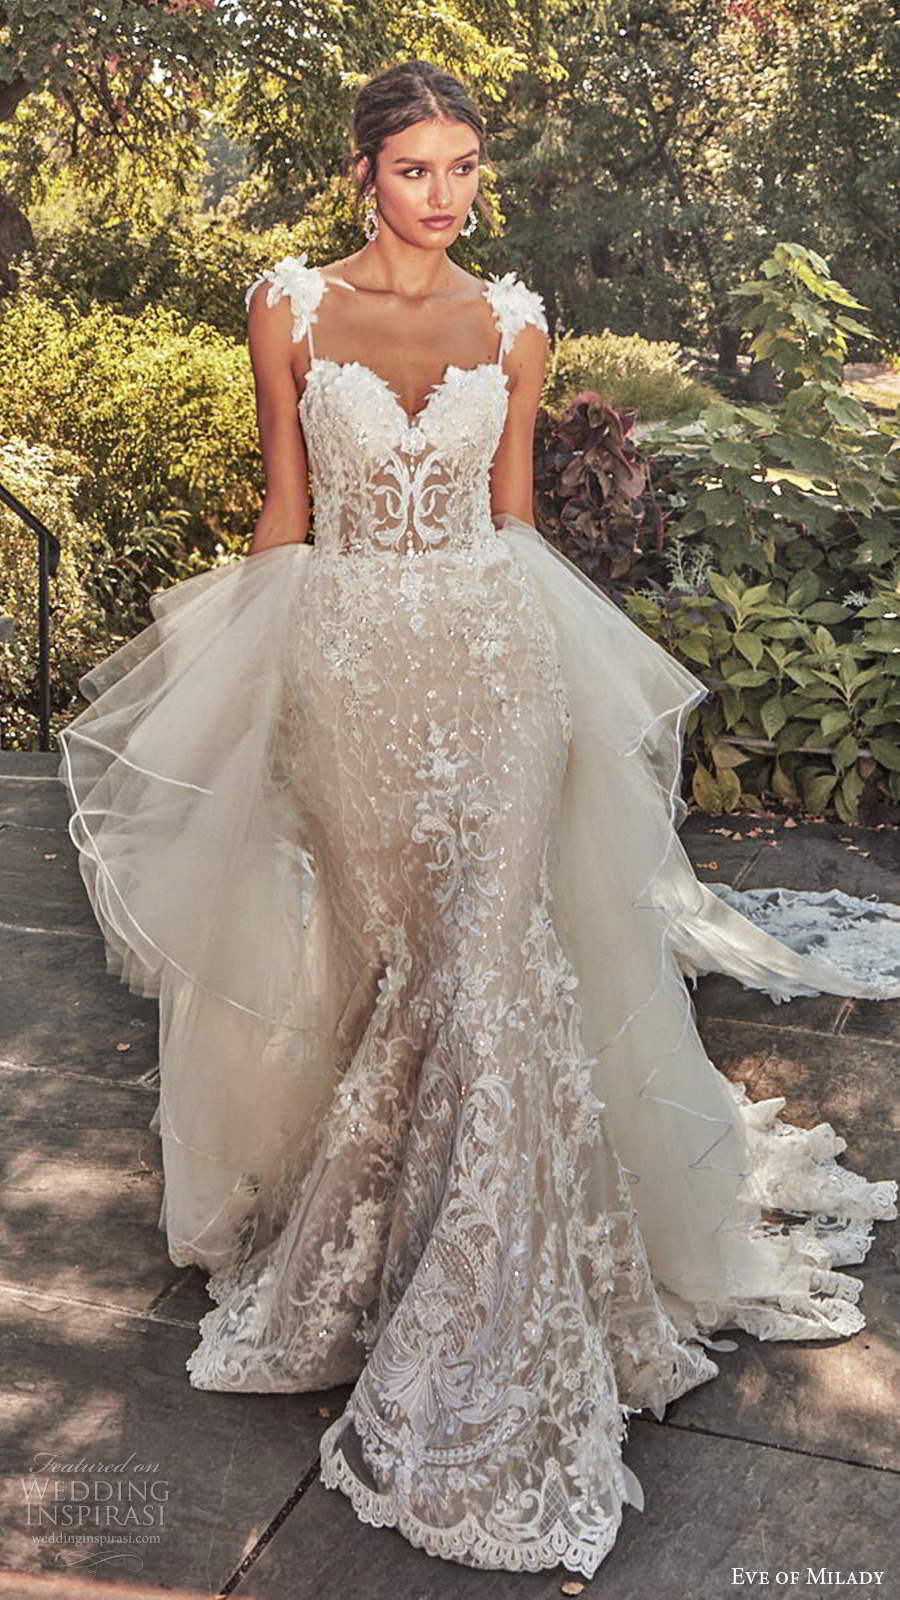 eve of milady spring 2020 bridal sleeveless straps sweetheart neckline fully embellished sheath mermaid lace wedding dress ball gown overskirt chapel train (1) mv